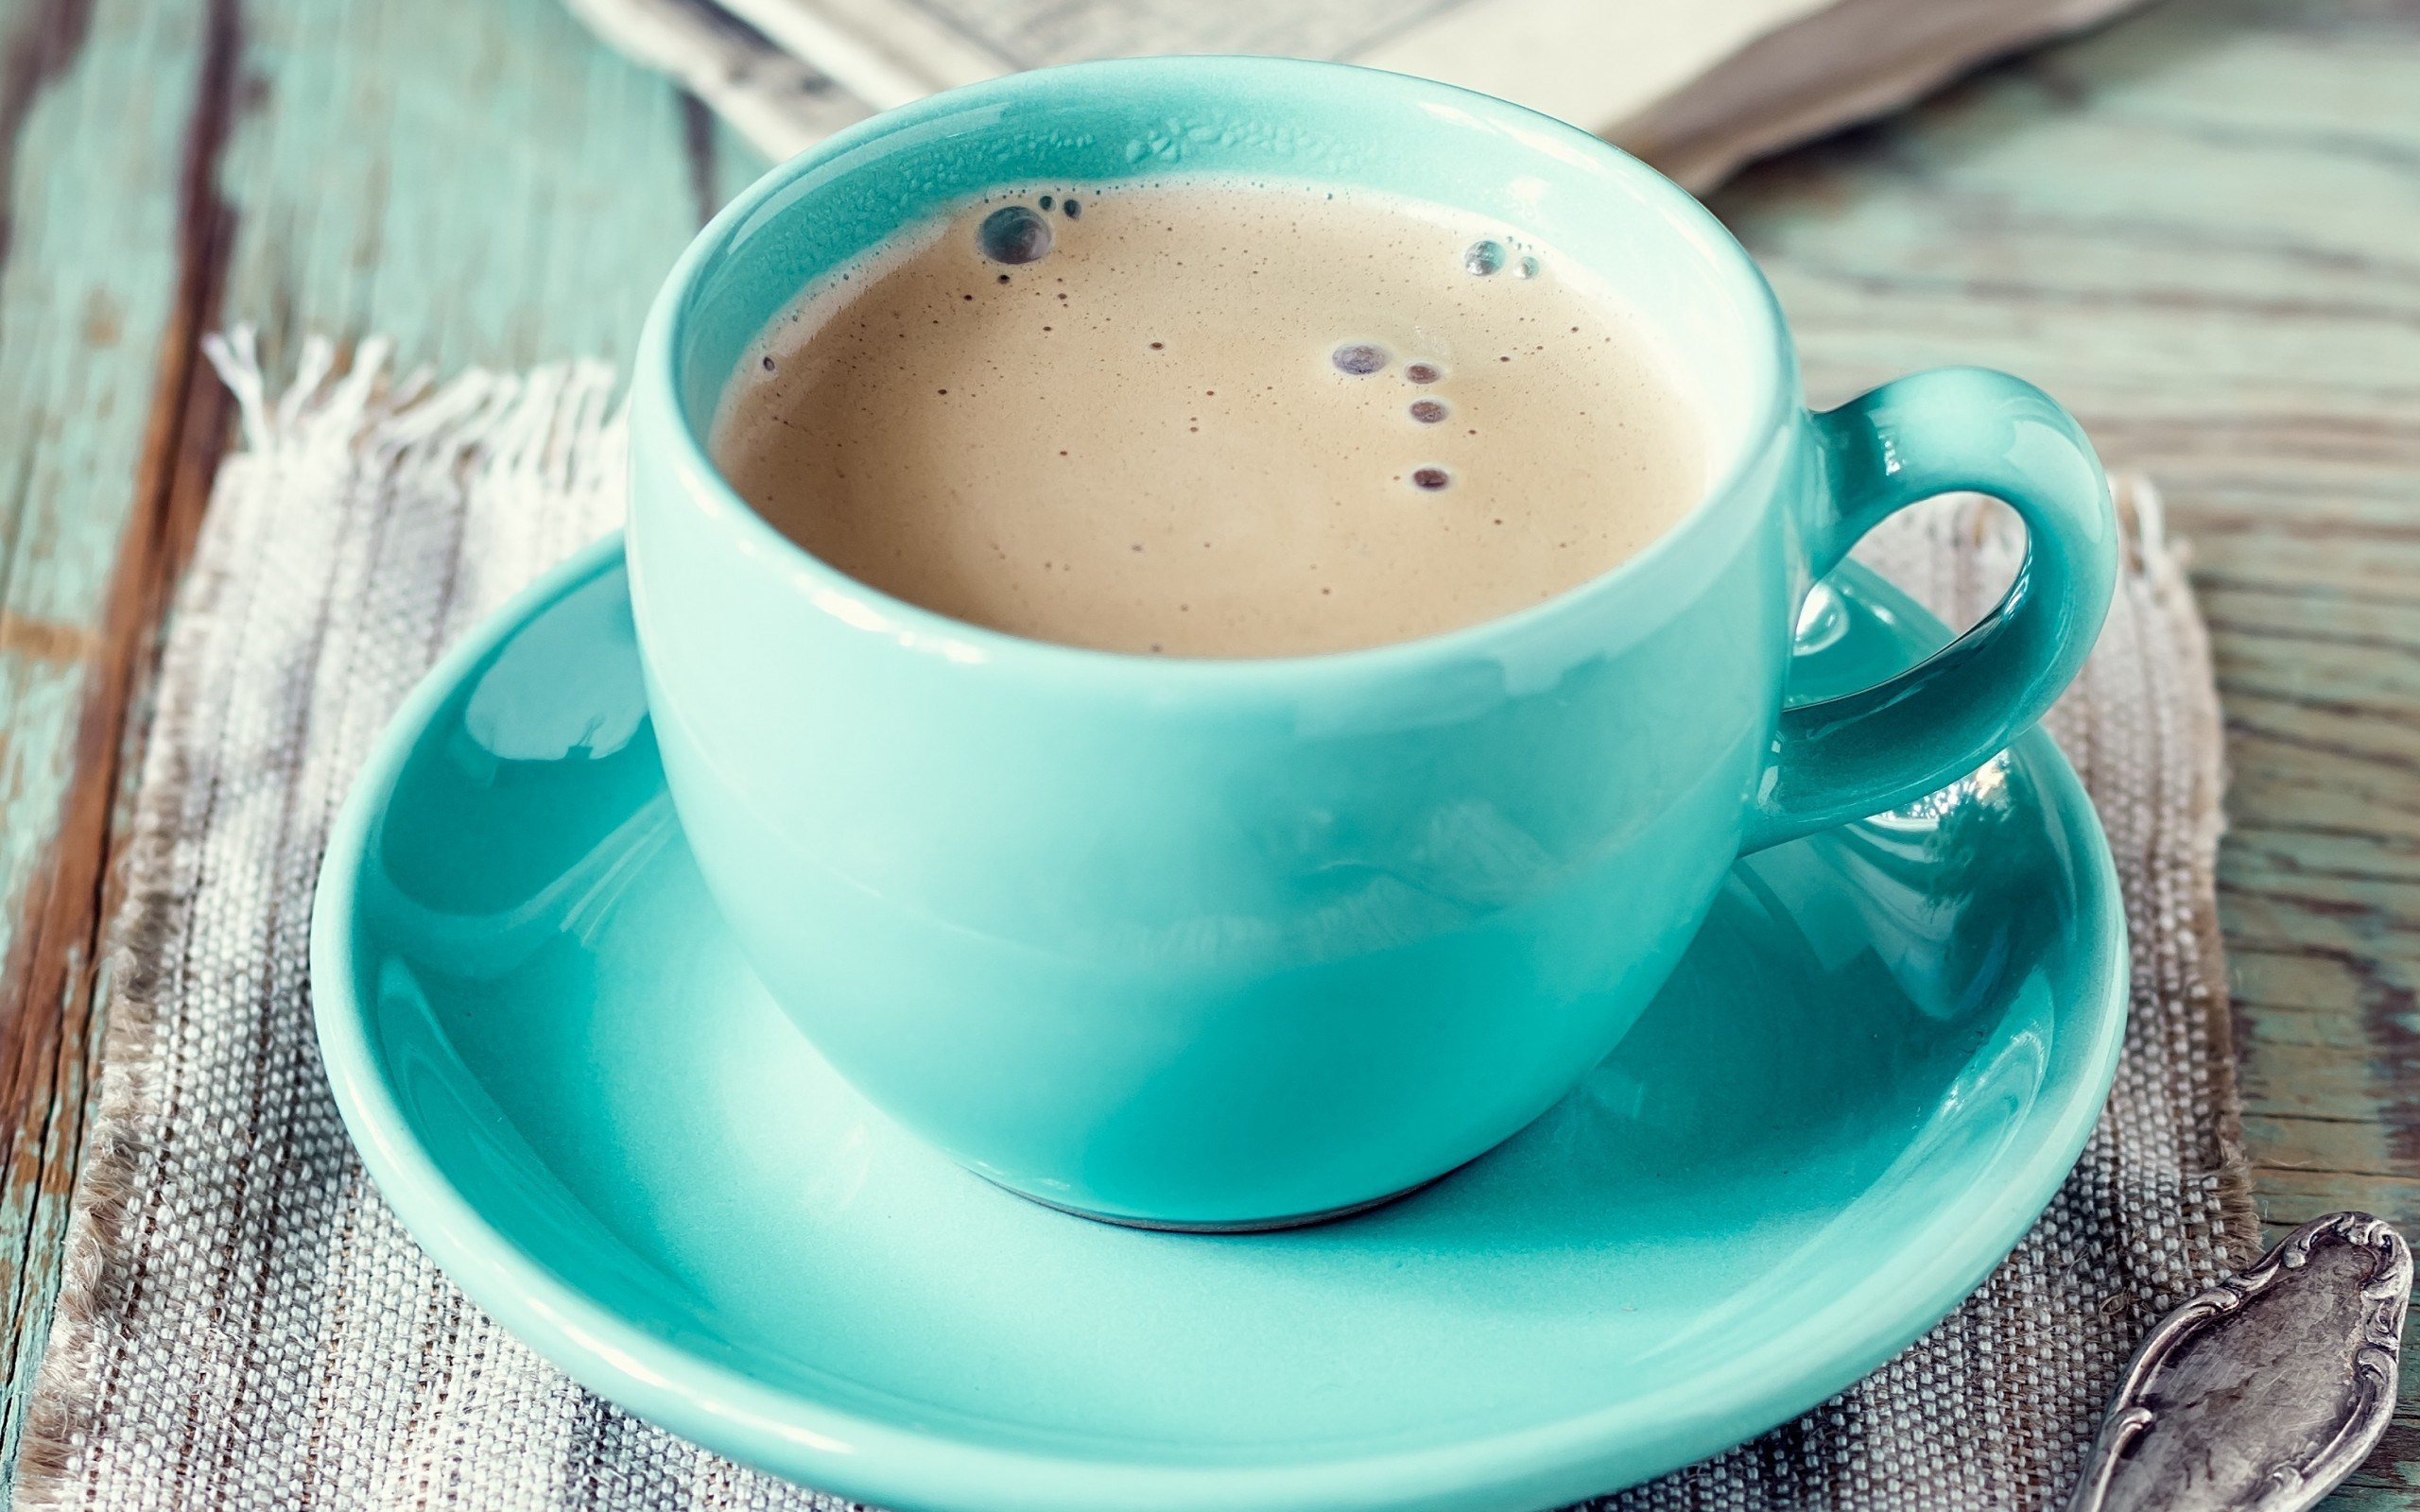 Blue cup with saucer of cappuccino on rustic wooden table hd 2560x1600